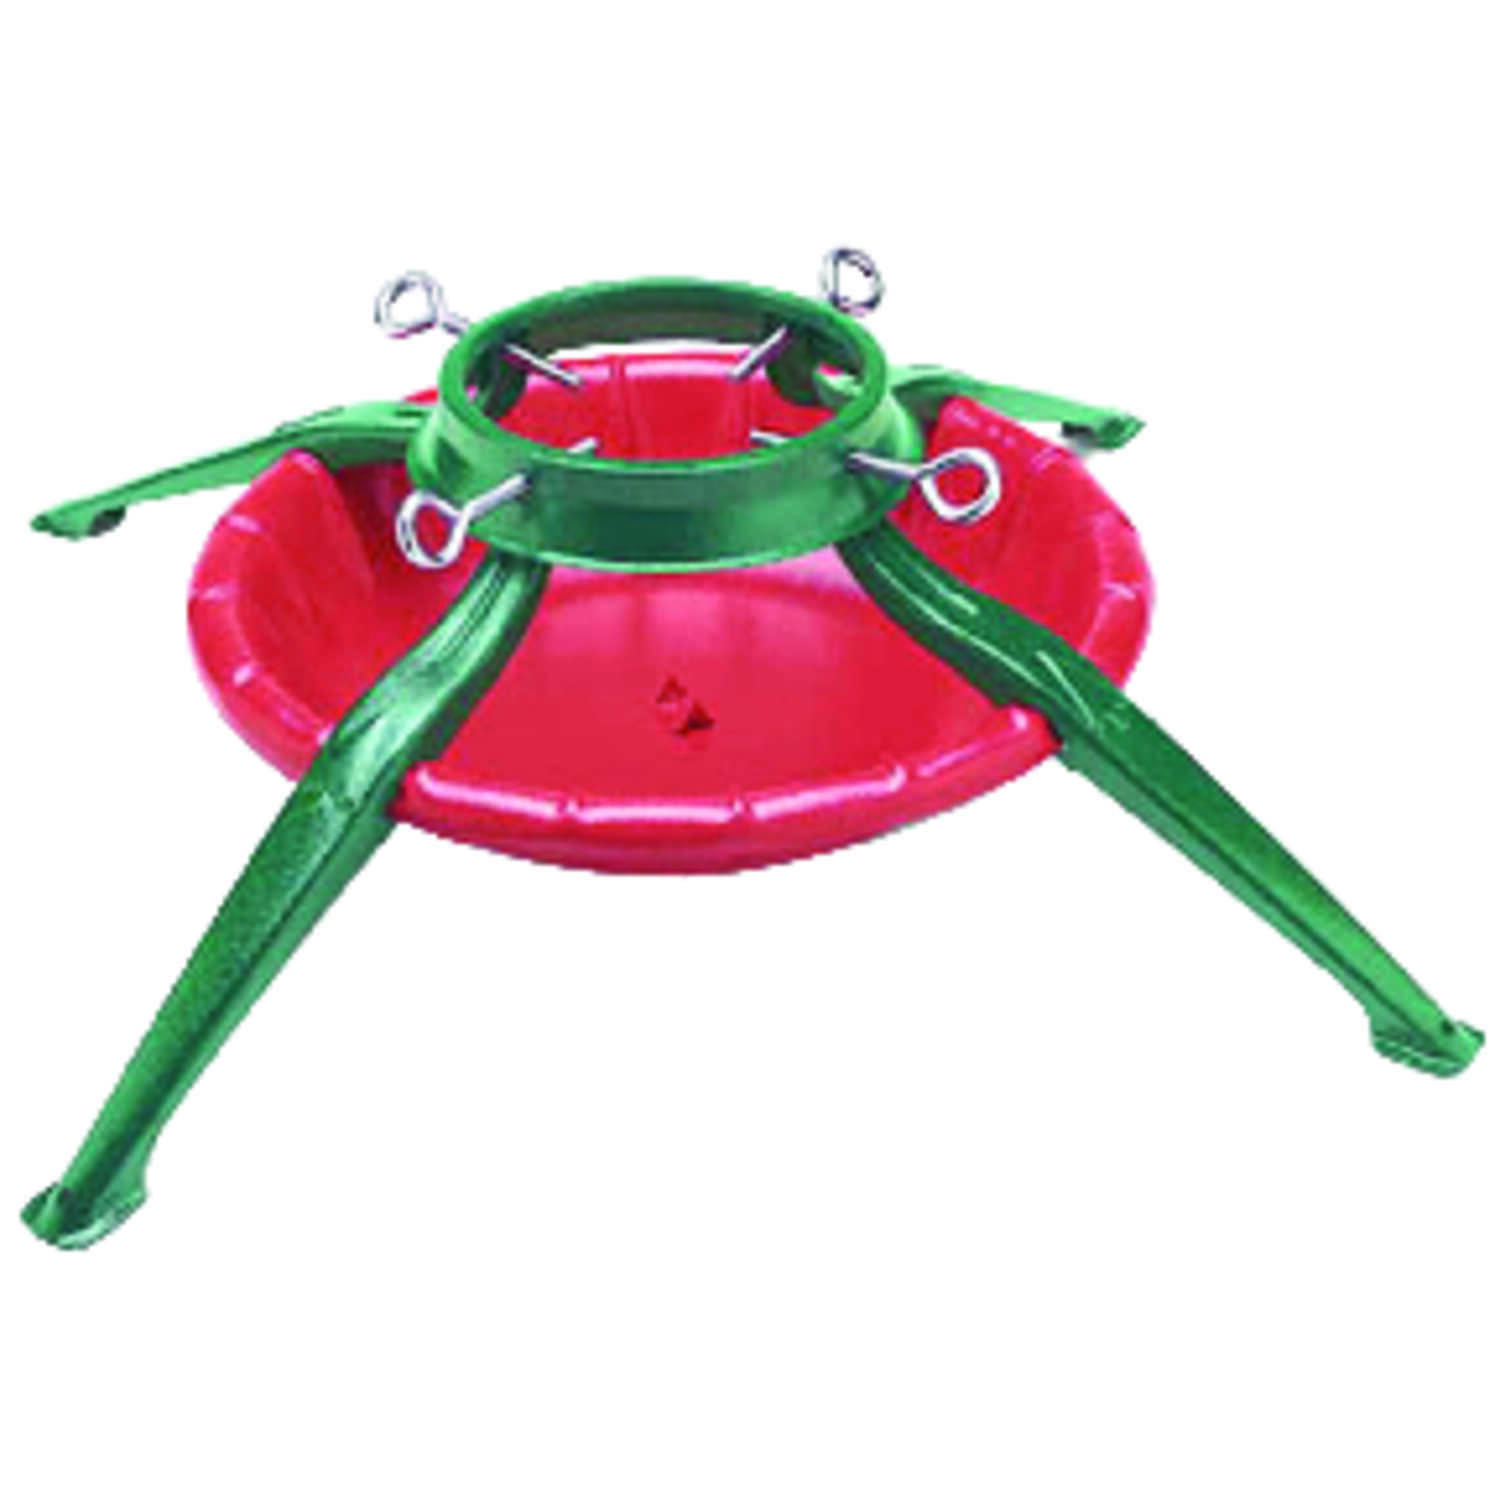 Jack-Post  Steel  Green/Red  Christmas Tree Stand  10 ft. Maximum Tree Height